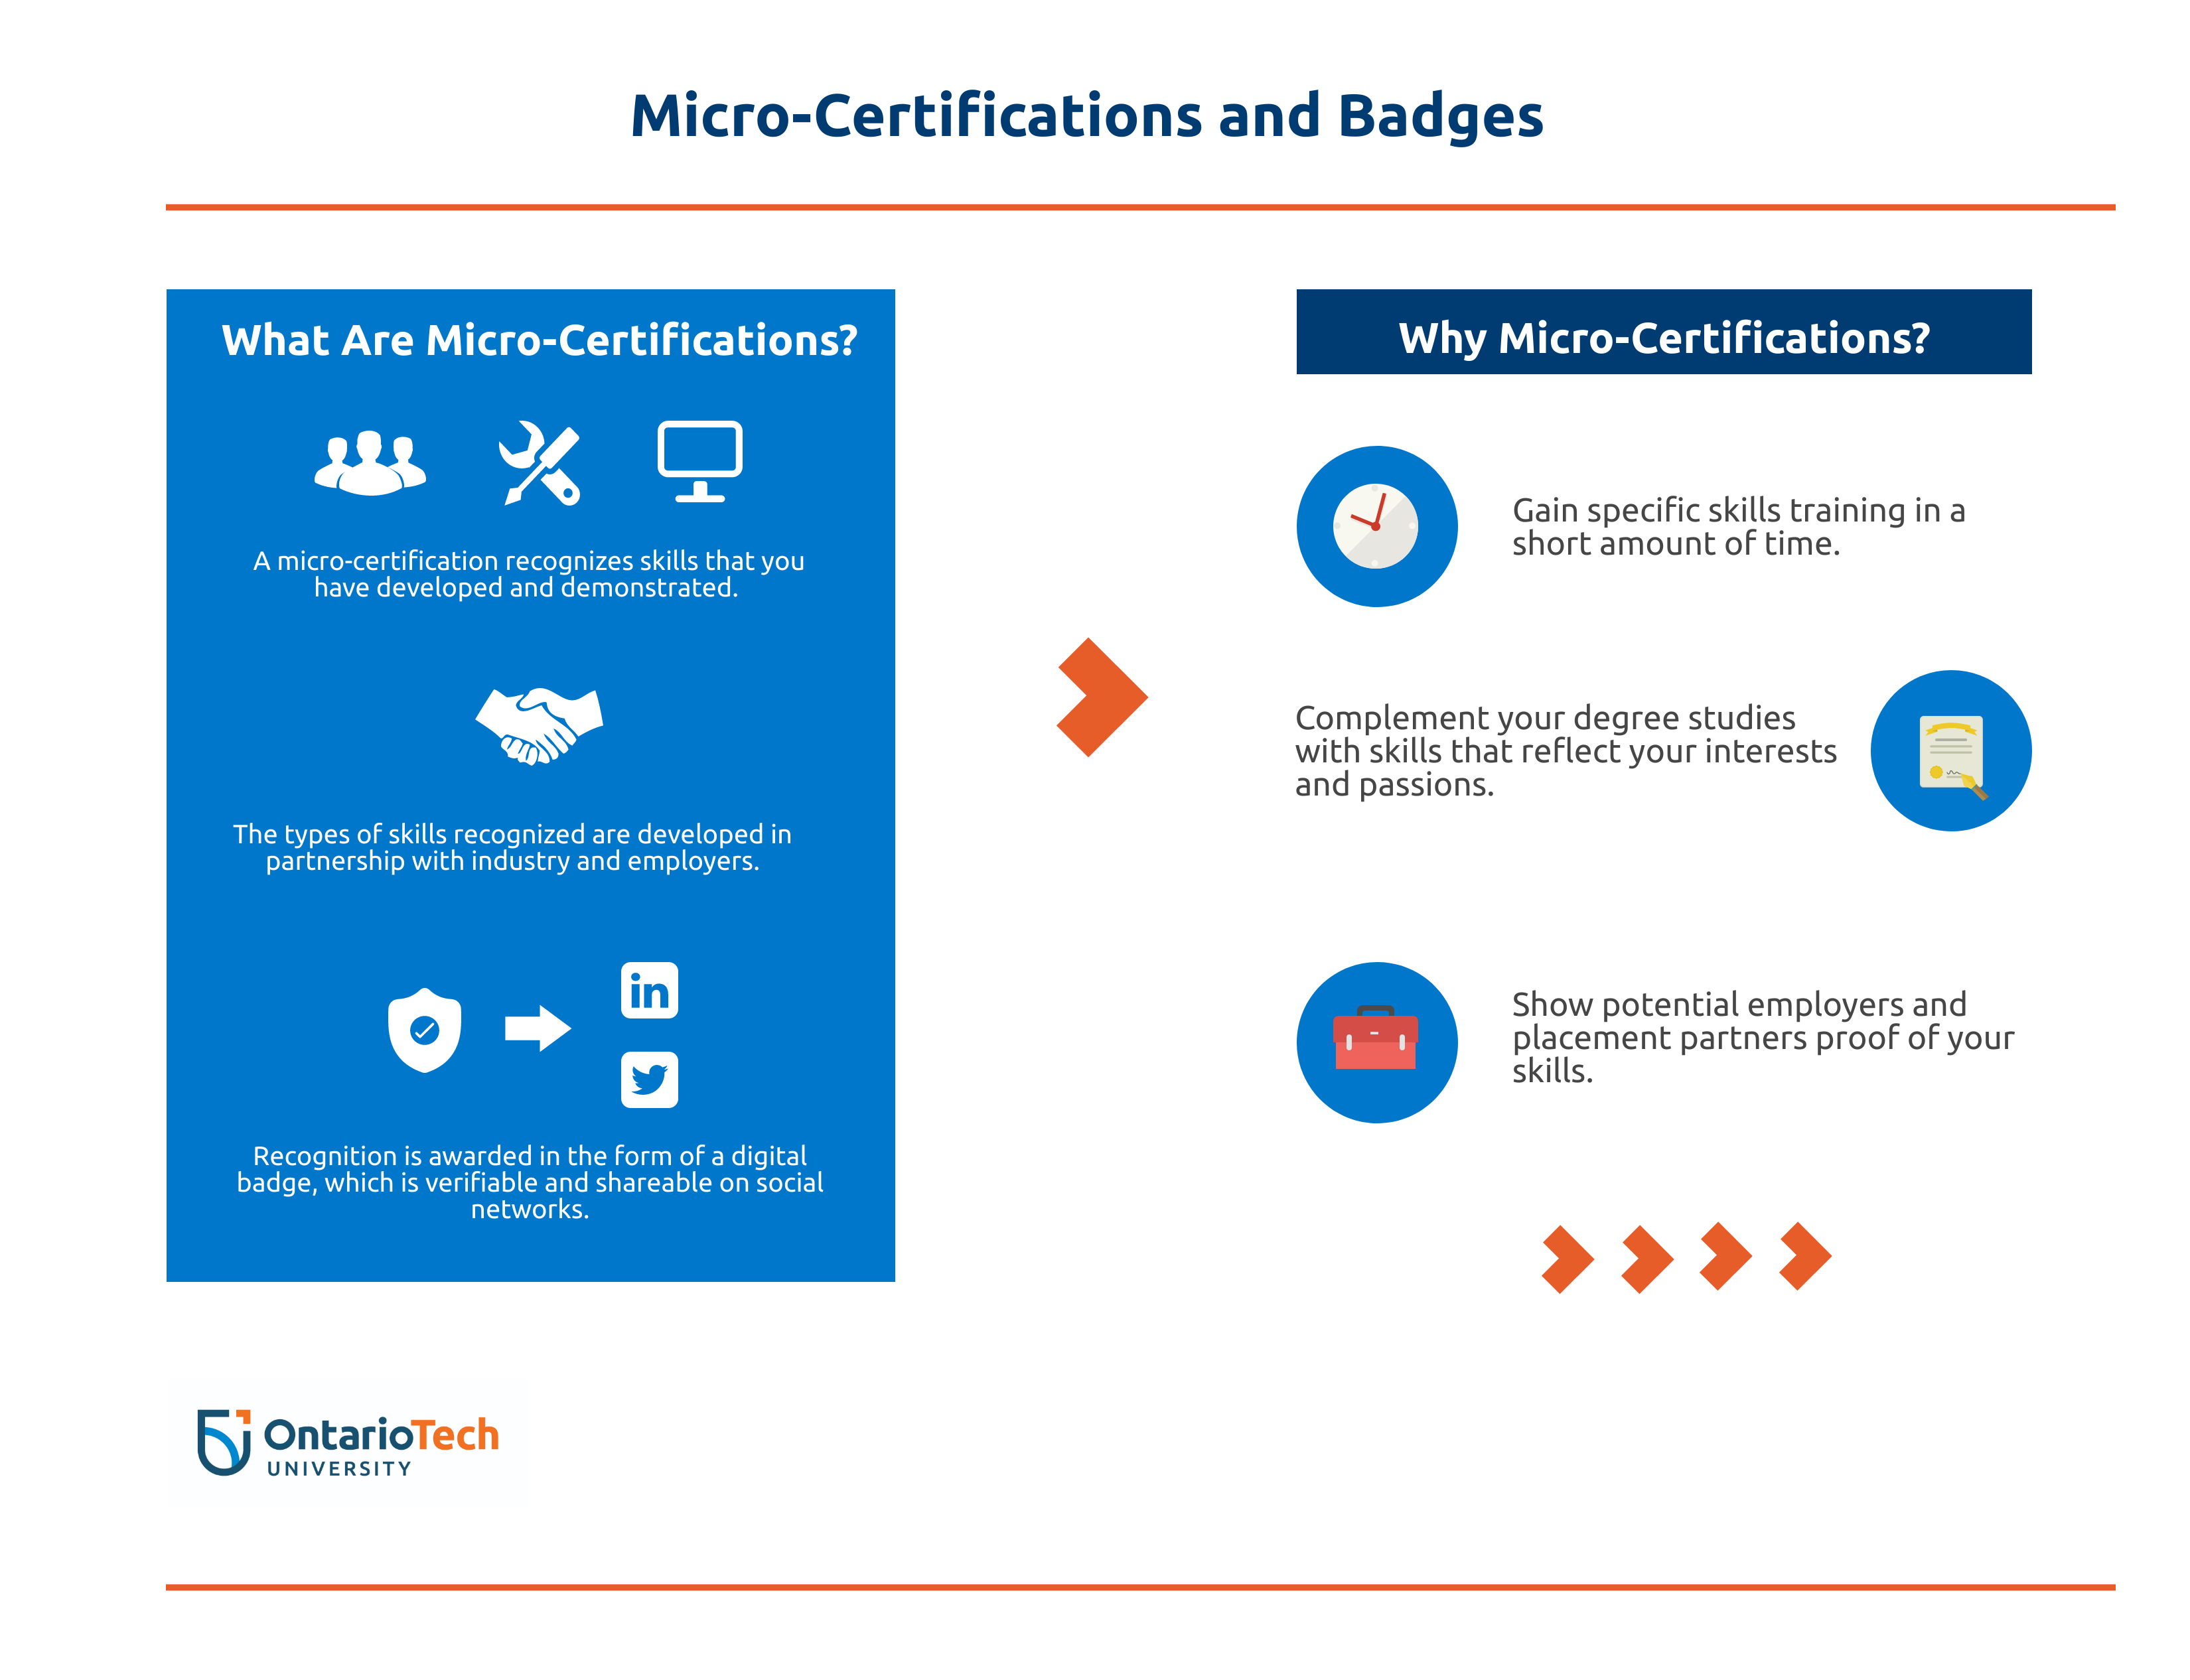 Why MicroCertifications?